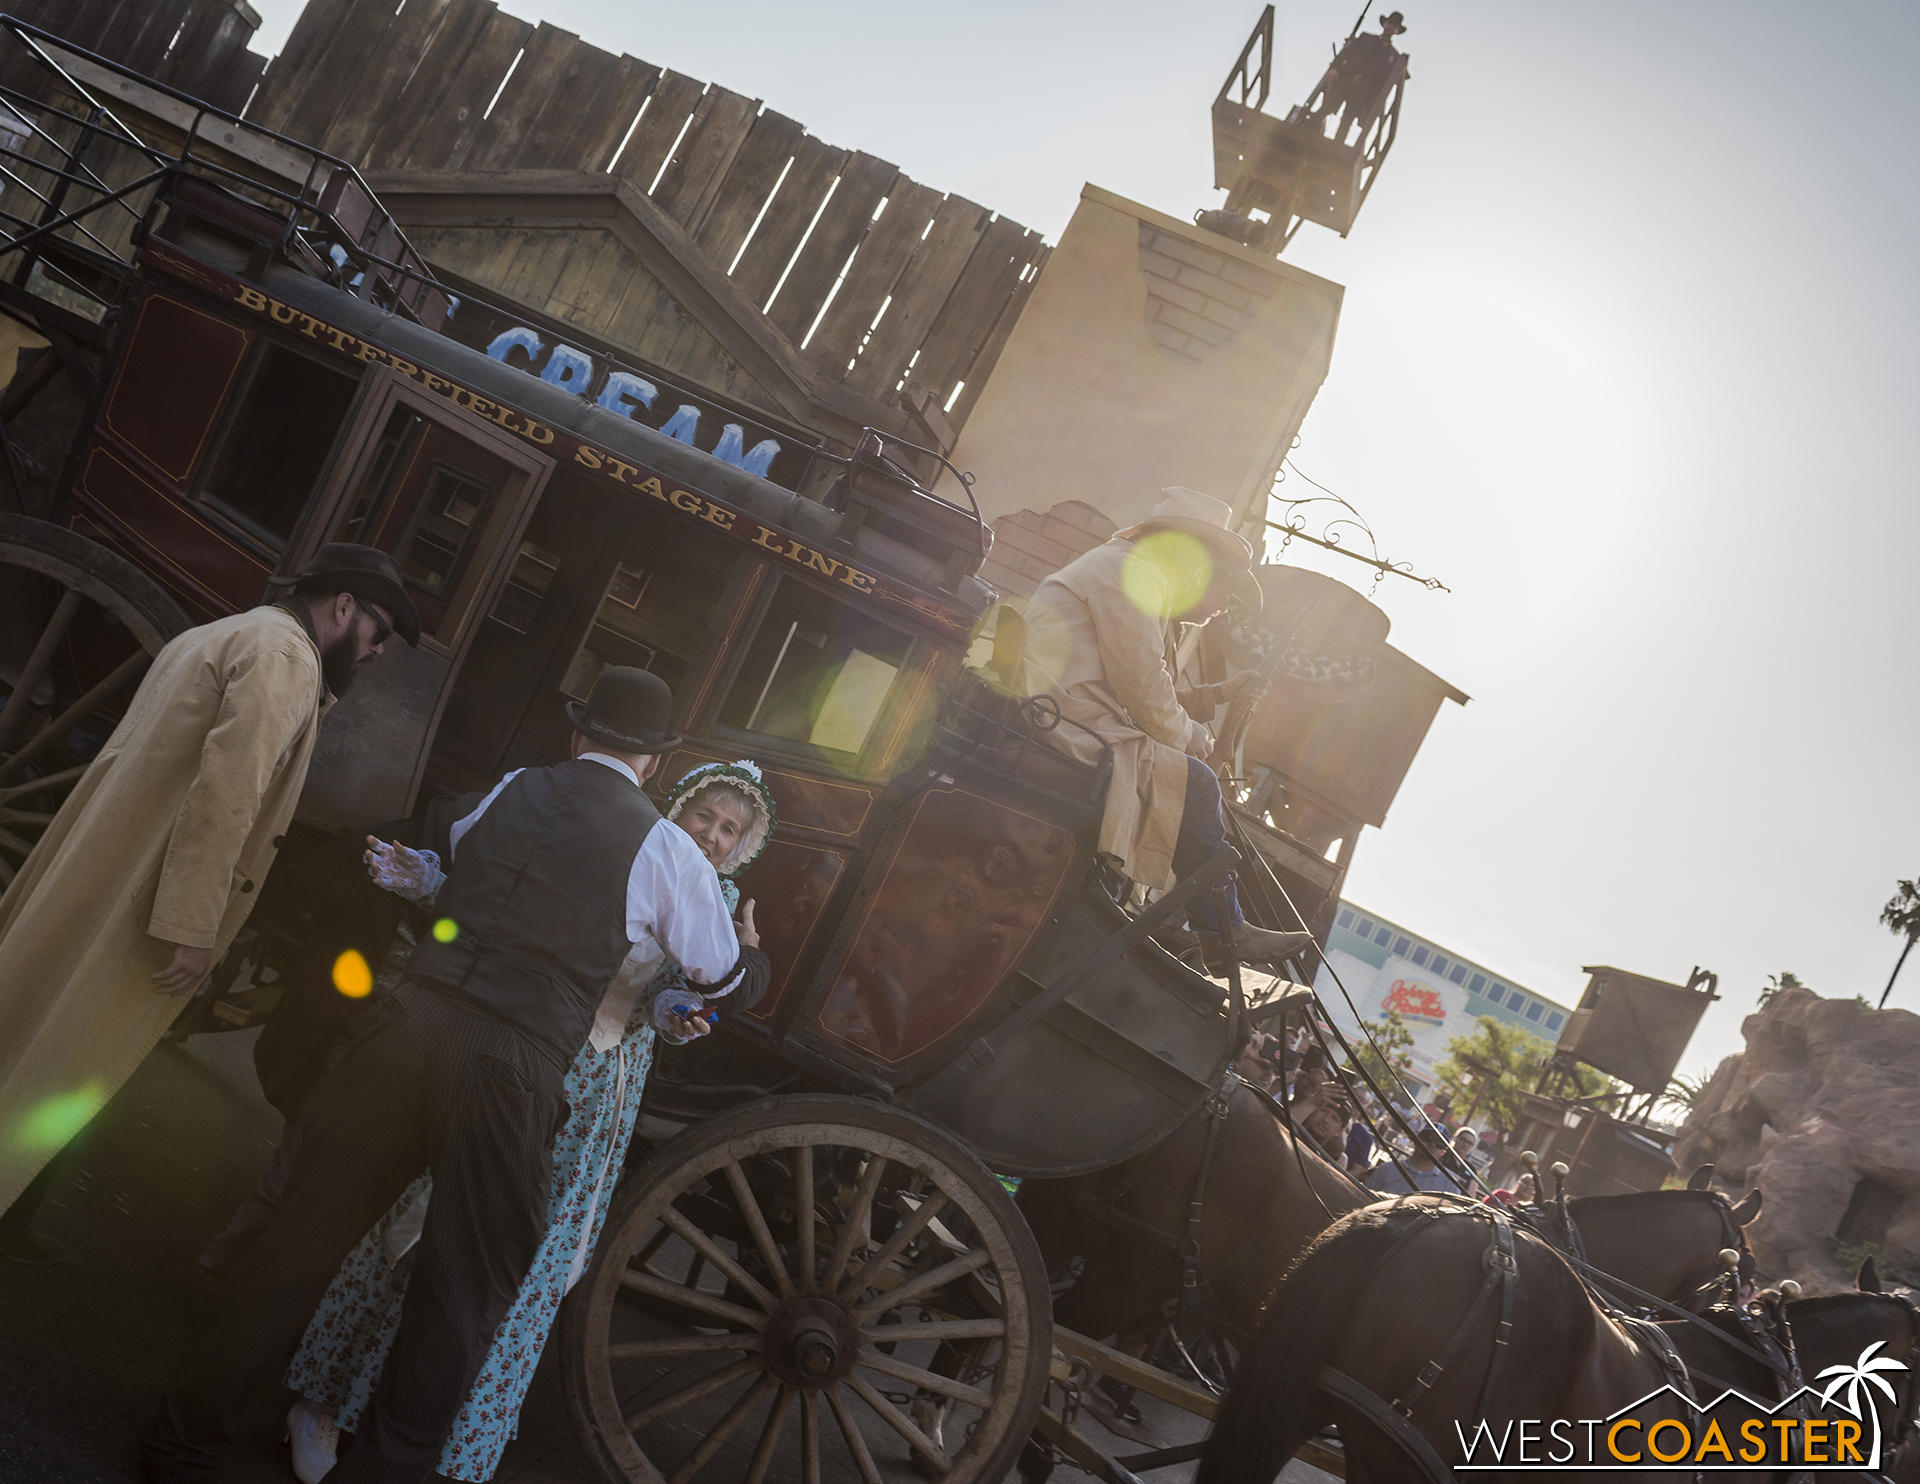 After Goldie West disembarks, Zeke embraces his wife, getting off the stagecoach.